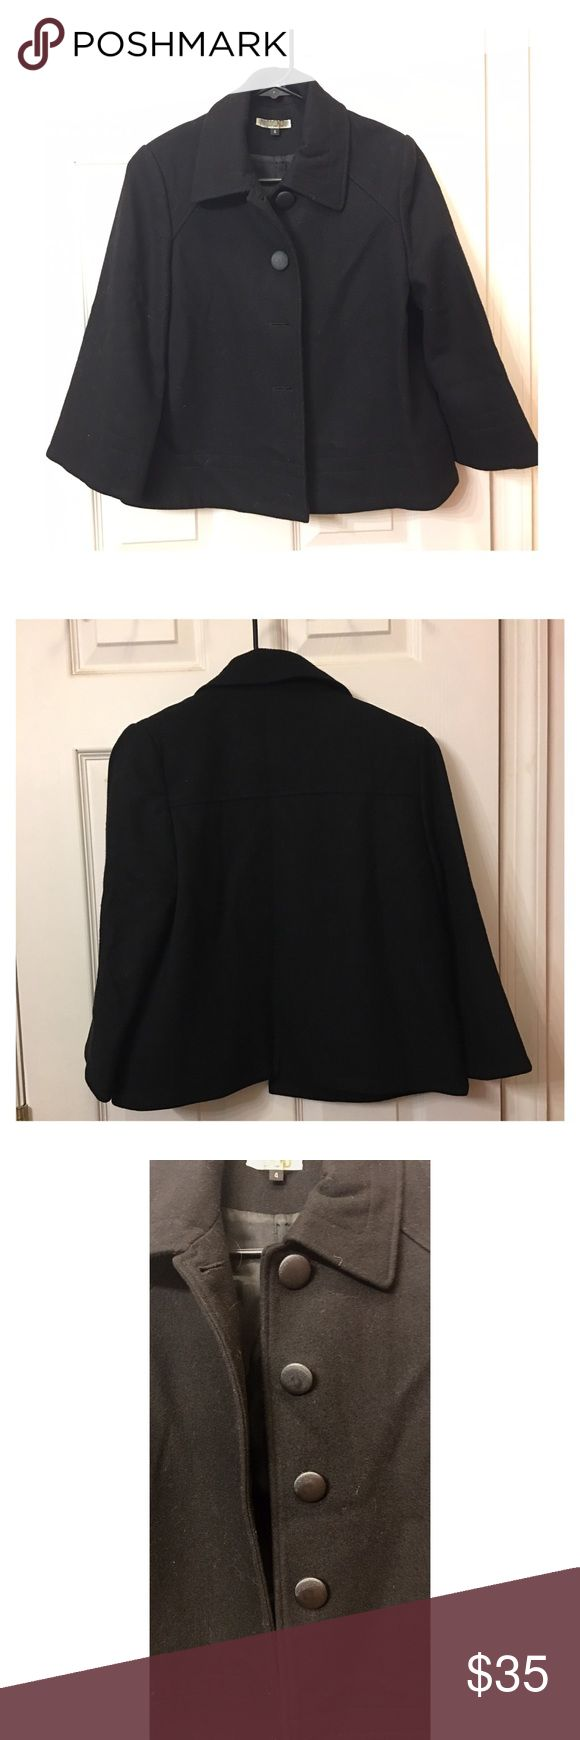 Anthropologie Pea Coat Really cute black Pea Coat - barely worn. Fabric buttons and lined on the inside. In perfect condition. Anthropologie Jackets & Coats Pea Coats